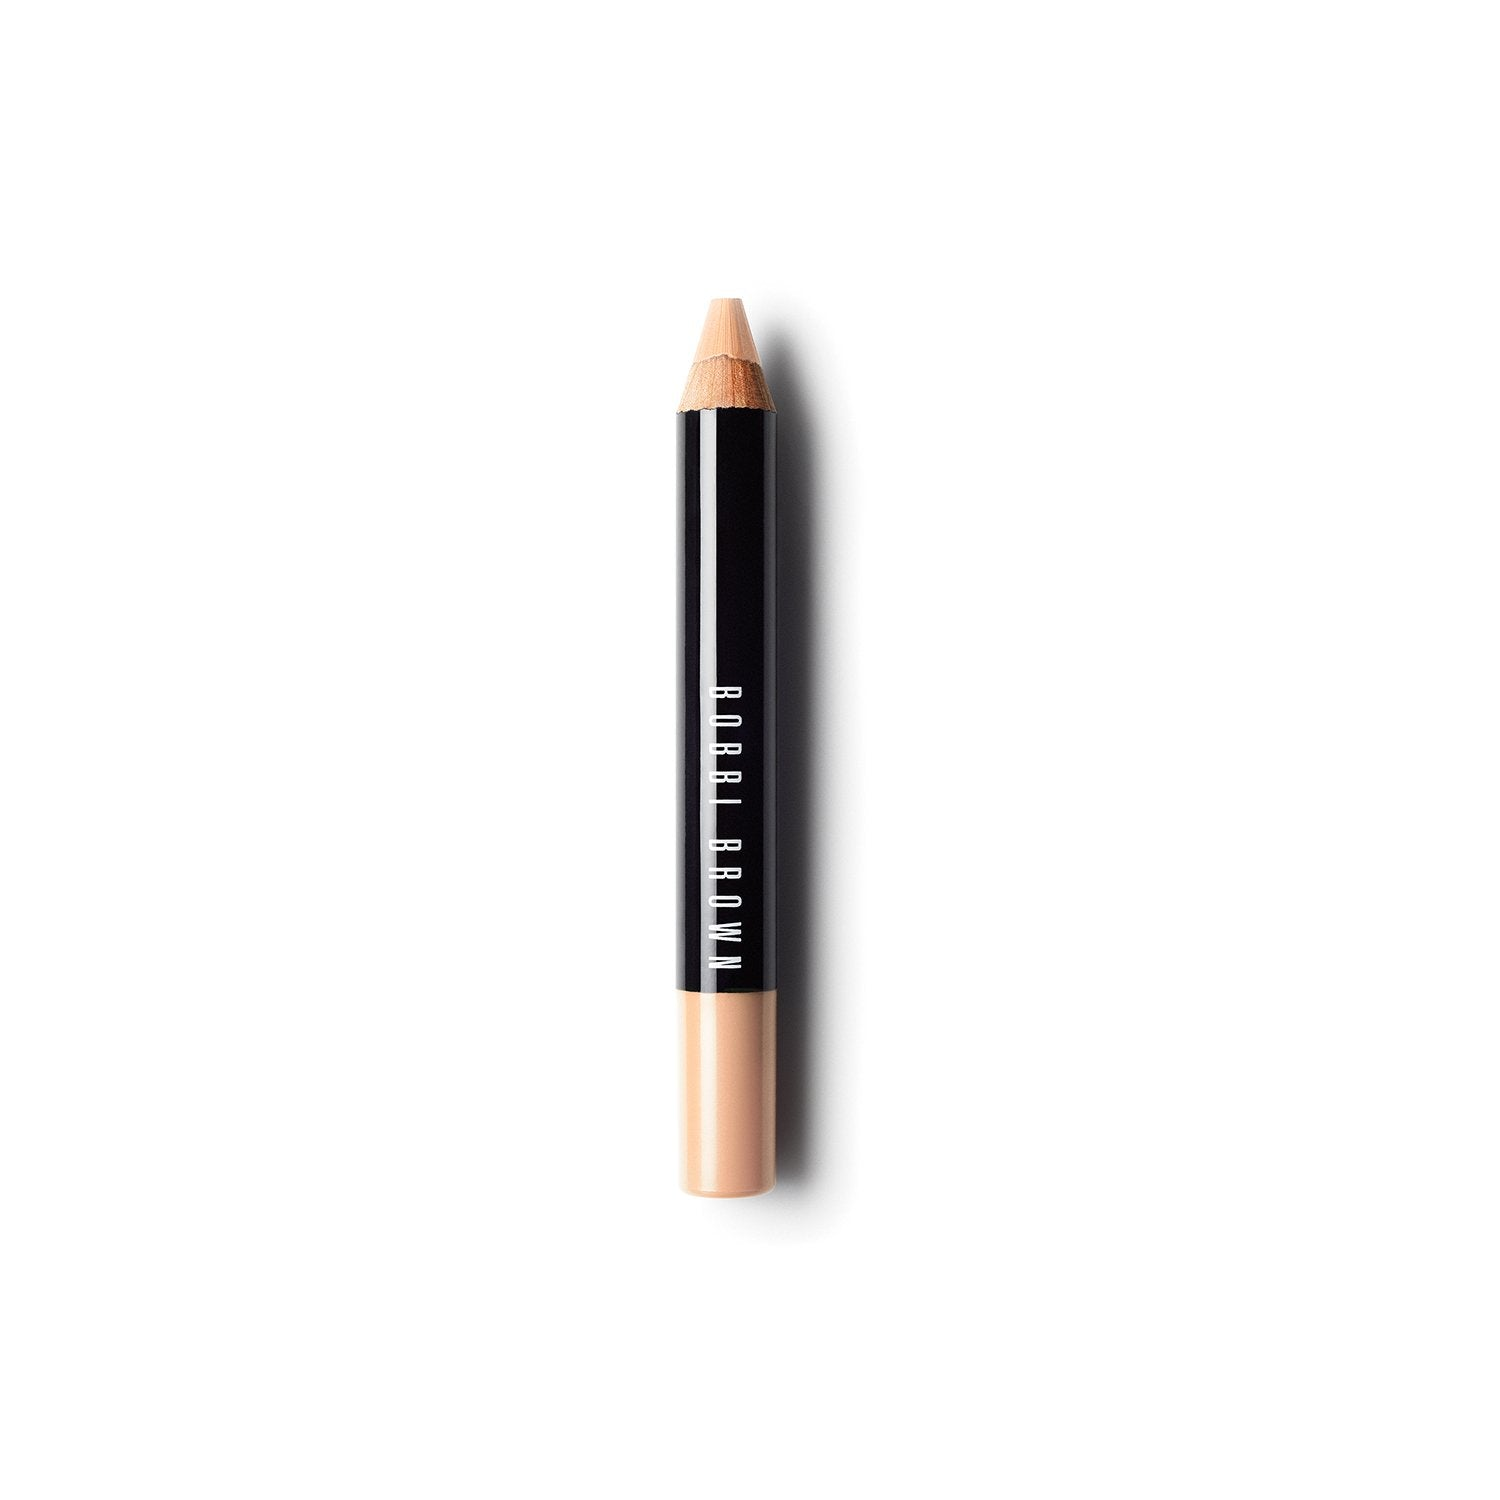 B.BROWN RETOUCH FACE PENCIL LIGHT